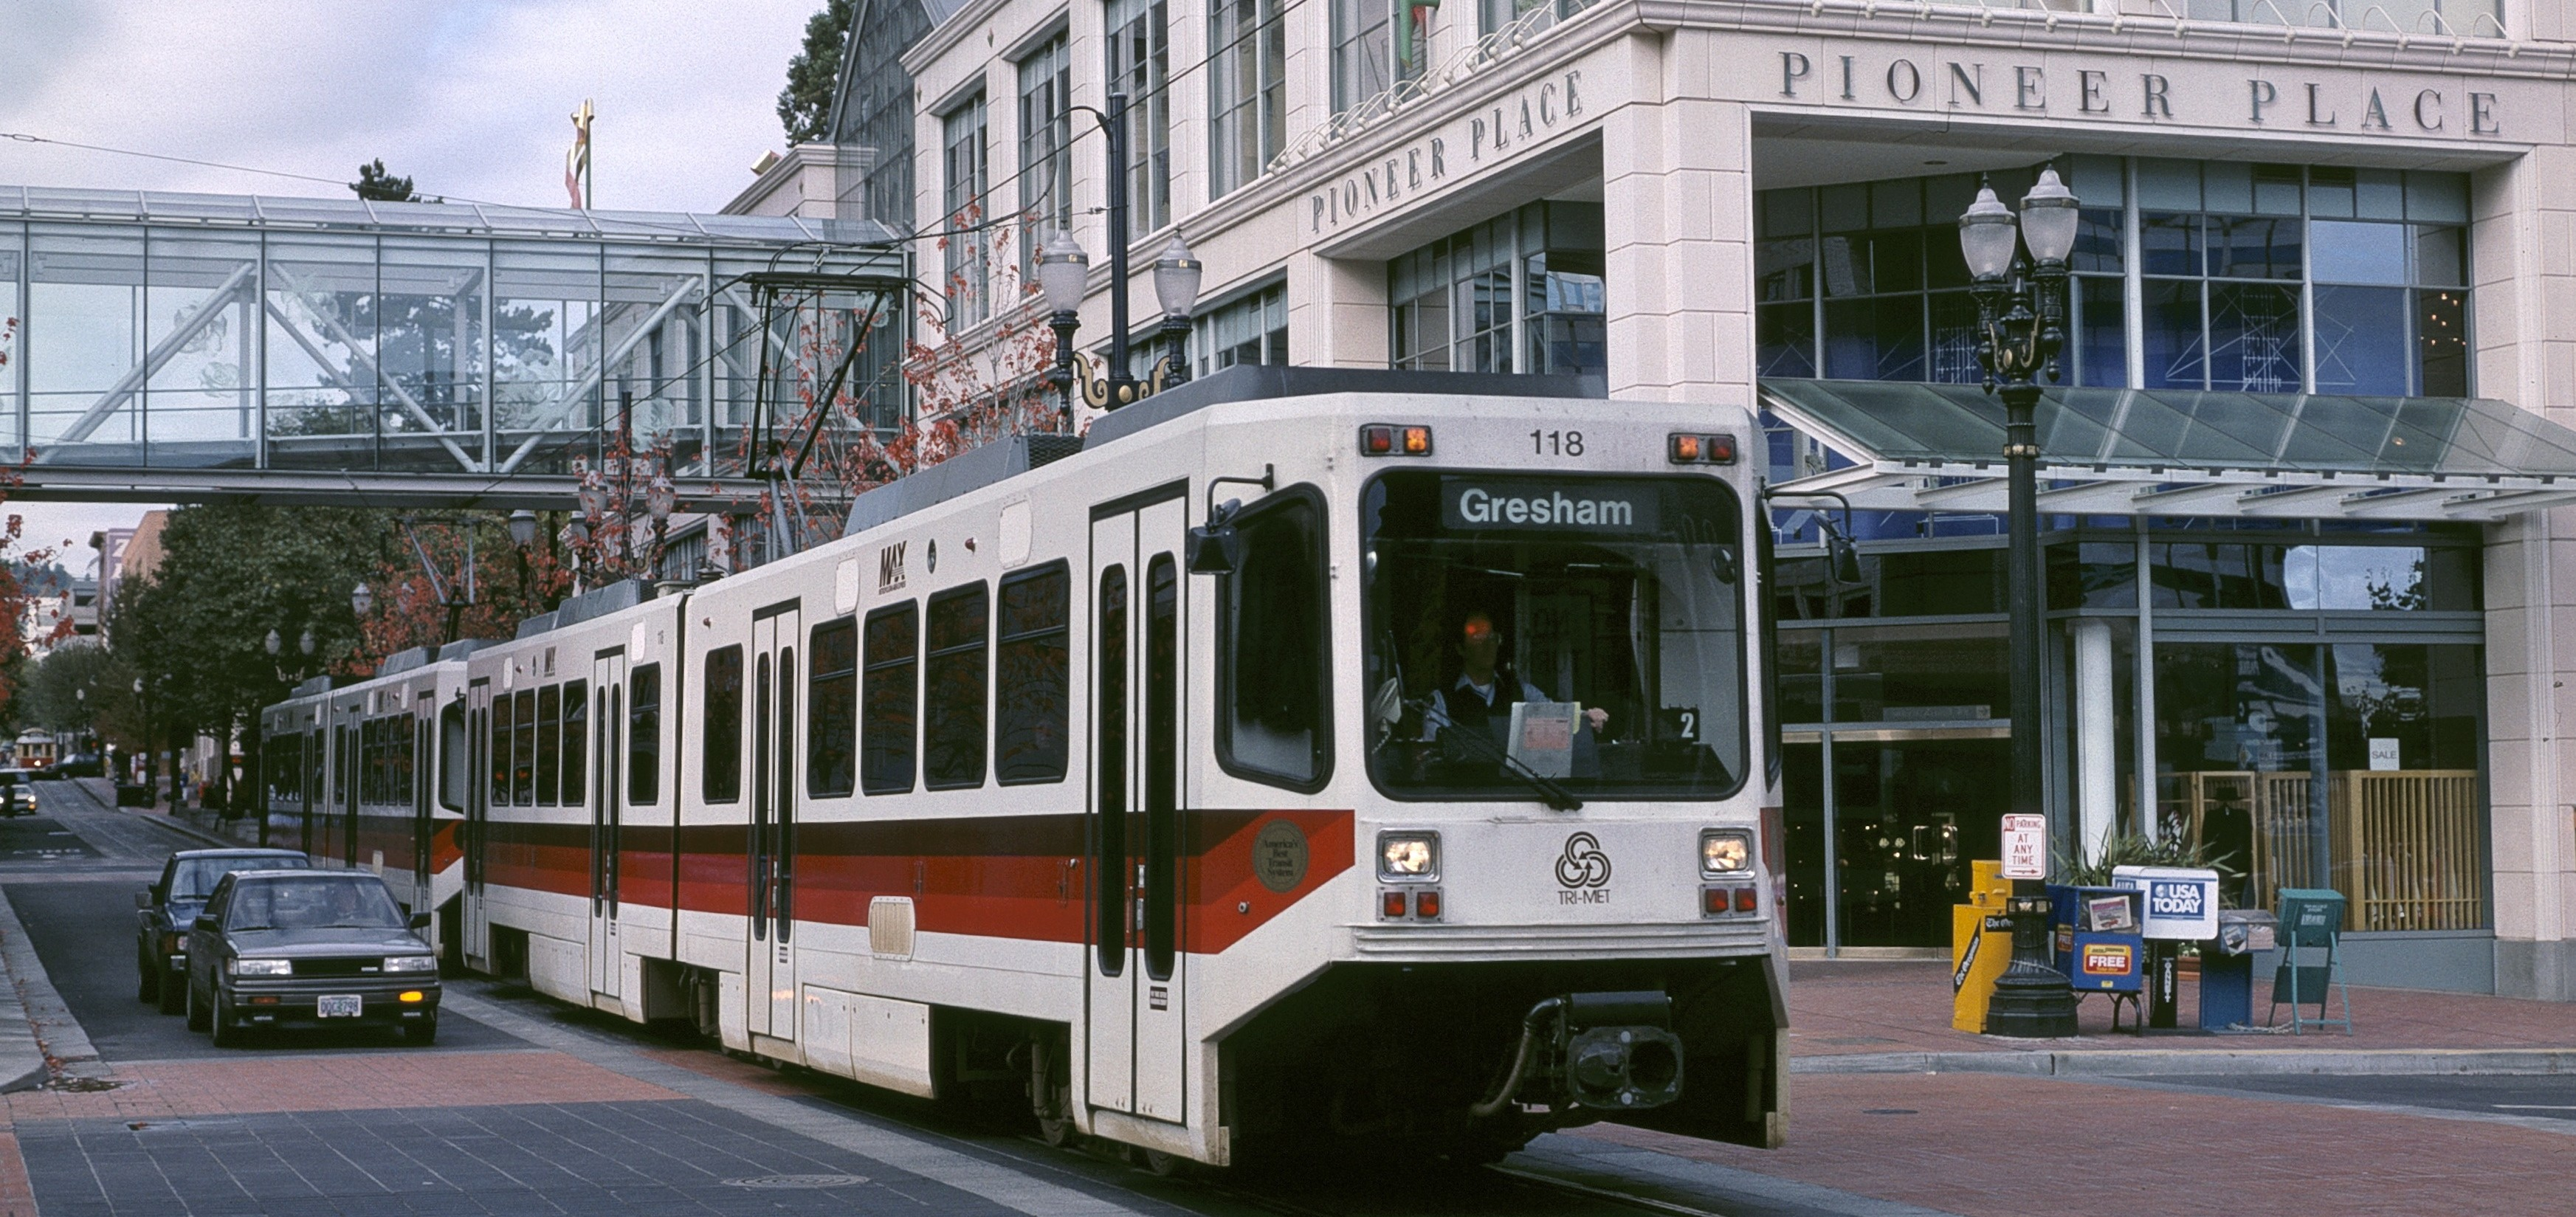 MAX_train_on_Yamhill_St_with_Pioneer_Place_1991_-_Portland_Oregon-e1430466766468